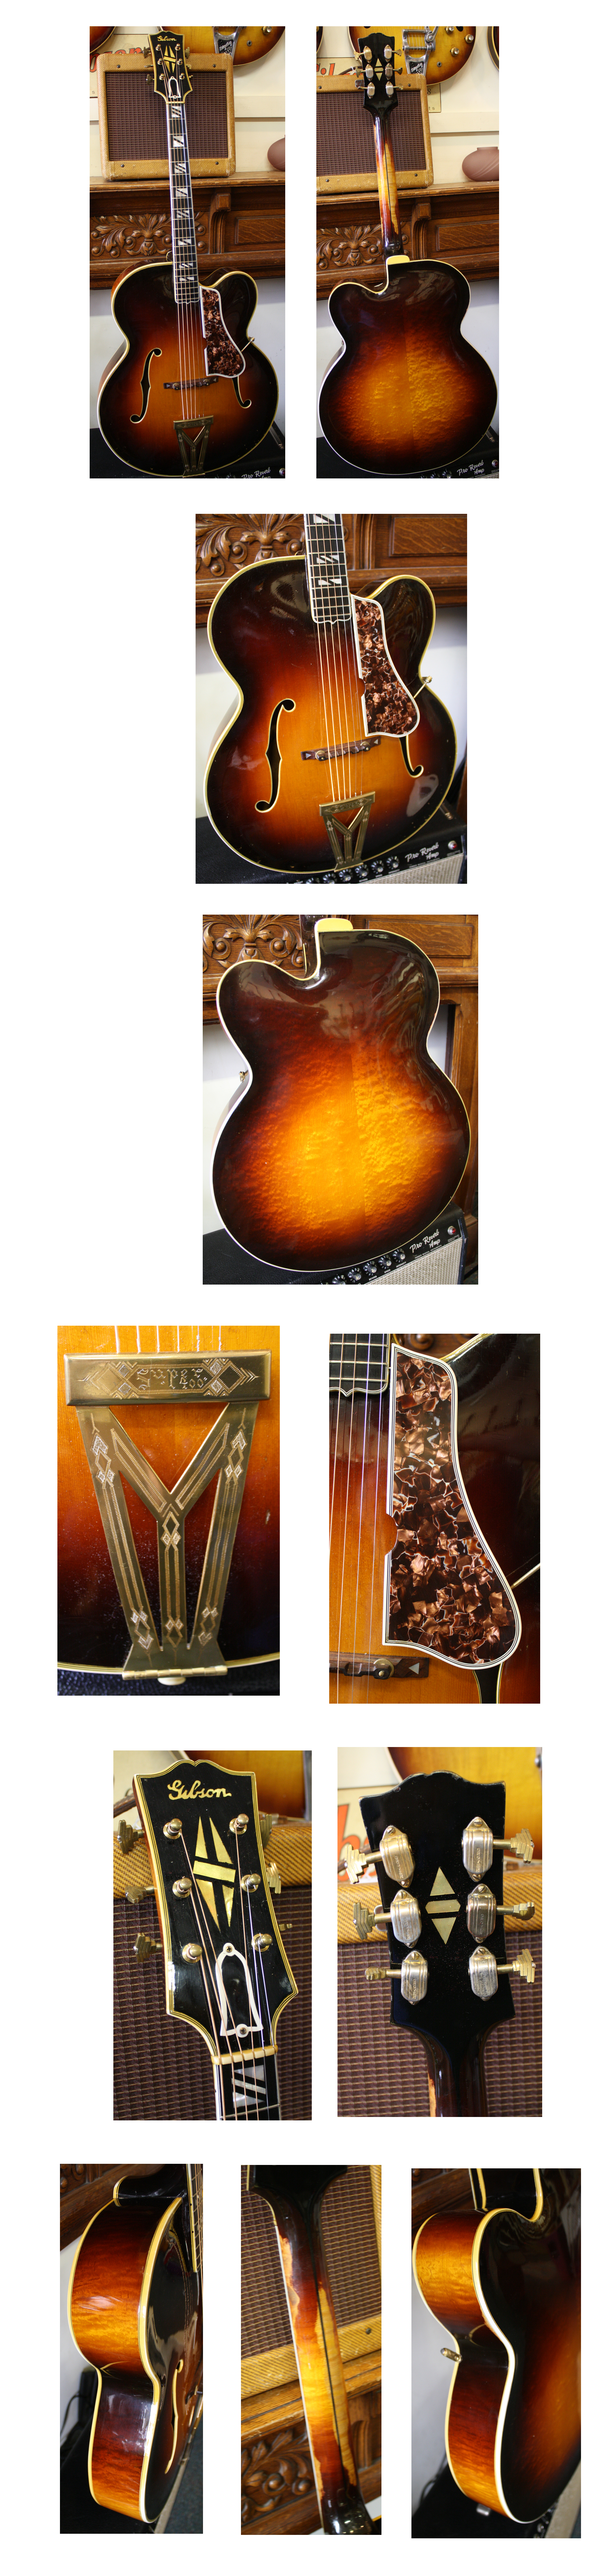 Lark Street Music Vintage Guitars Teaneck Nj Allparts Ep 4131000 Wiring Kit For Tele With 4 Way Switch Reverb 1250 Gibson Super 400 Premier 1940 Sunburst 18 Cutaway No Cracks Or Repairs Other Than Possible Neck Reset All Original Parts And Finish